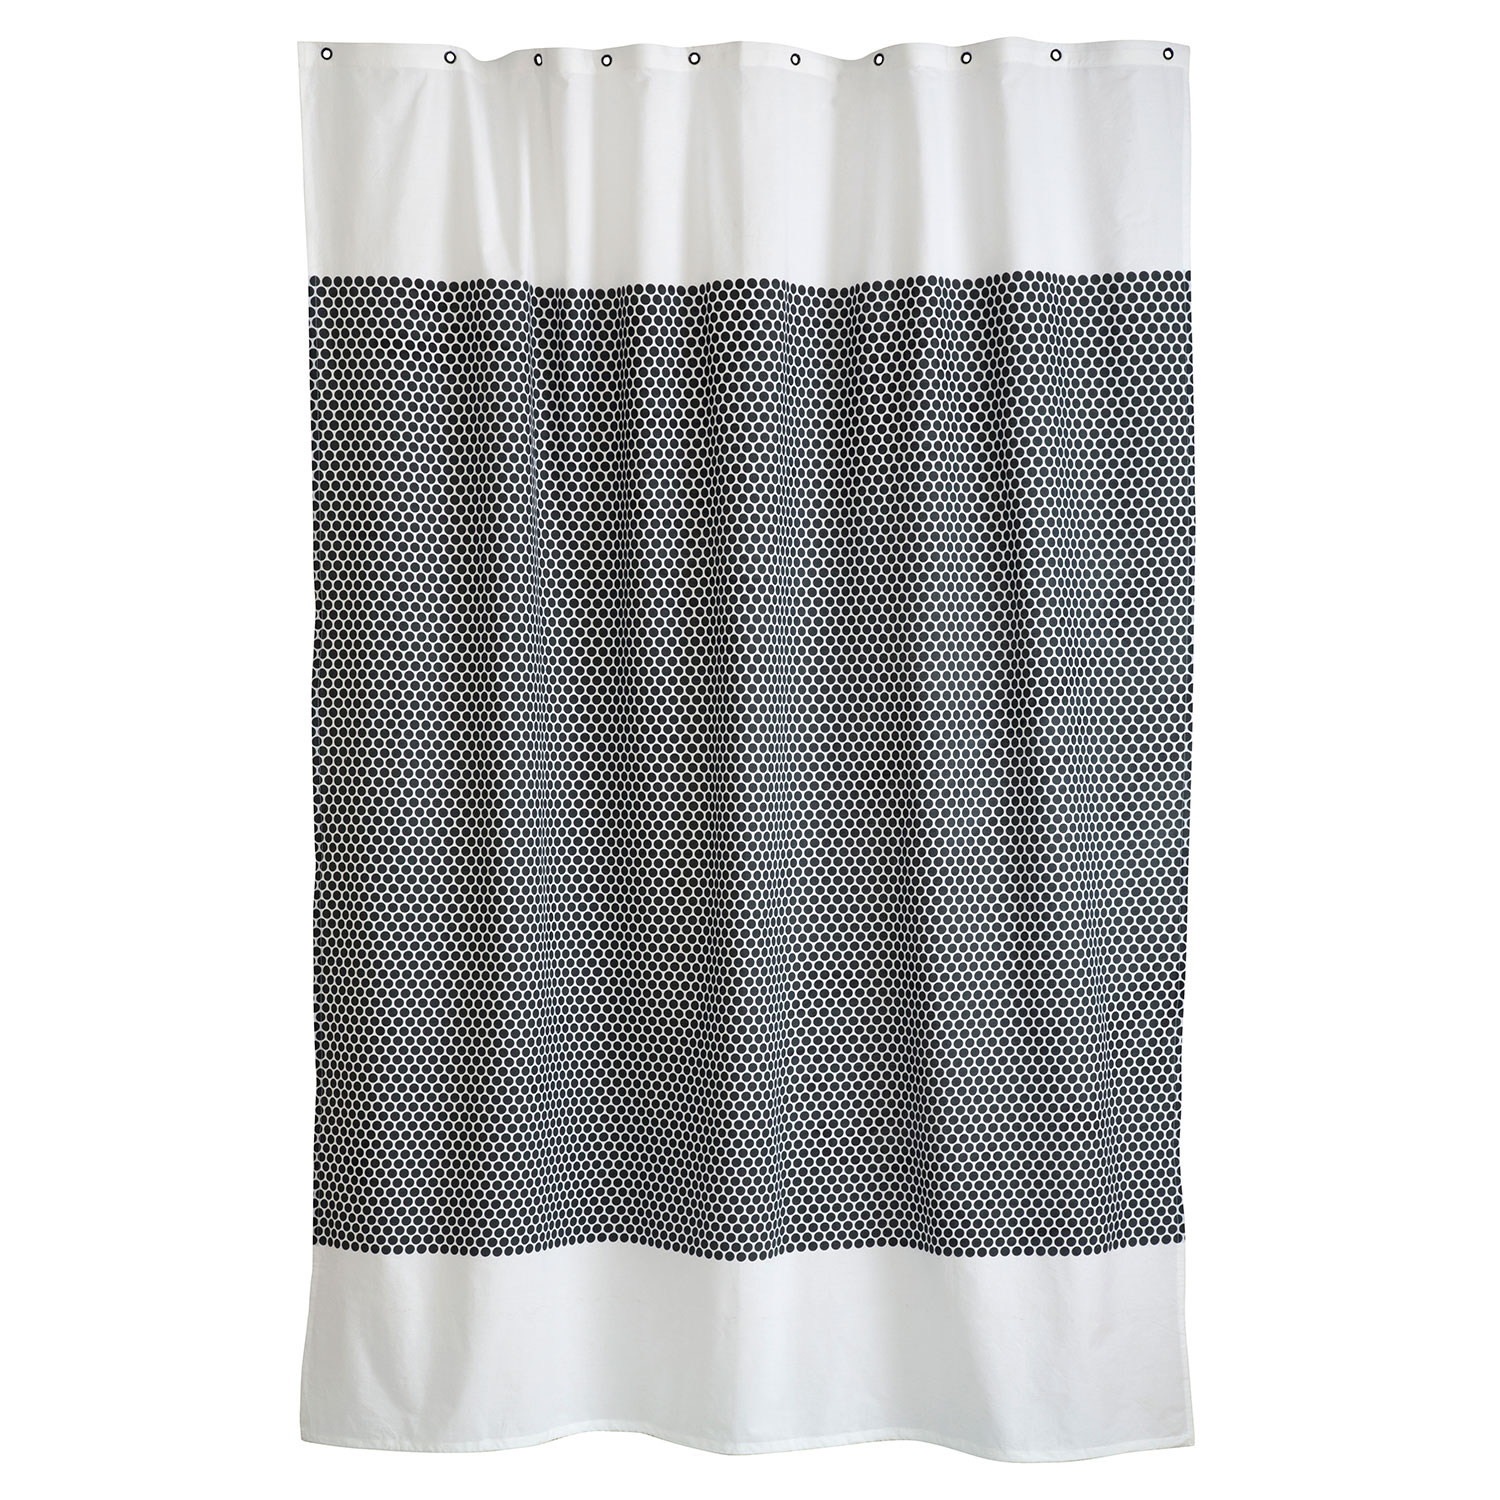 Grid Shower Curtain 150x200cm Black f White Mette Ditmer